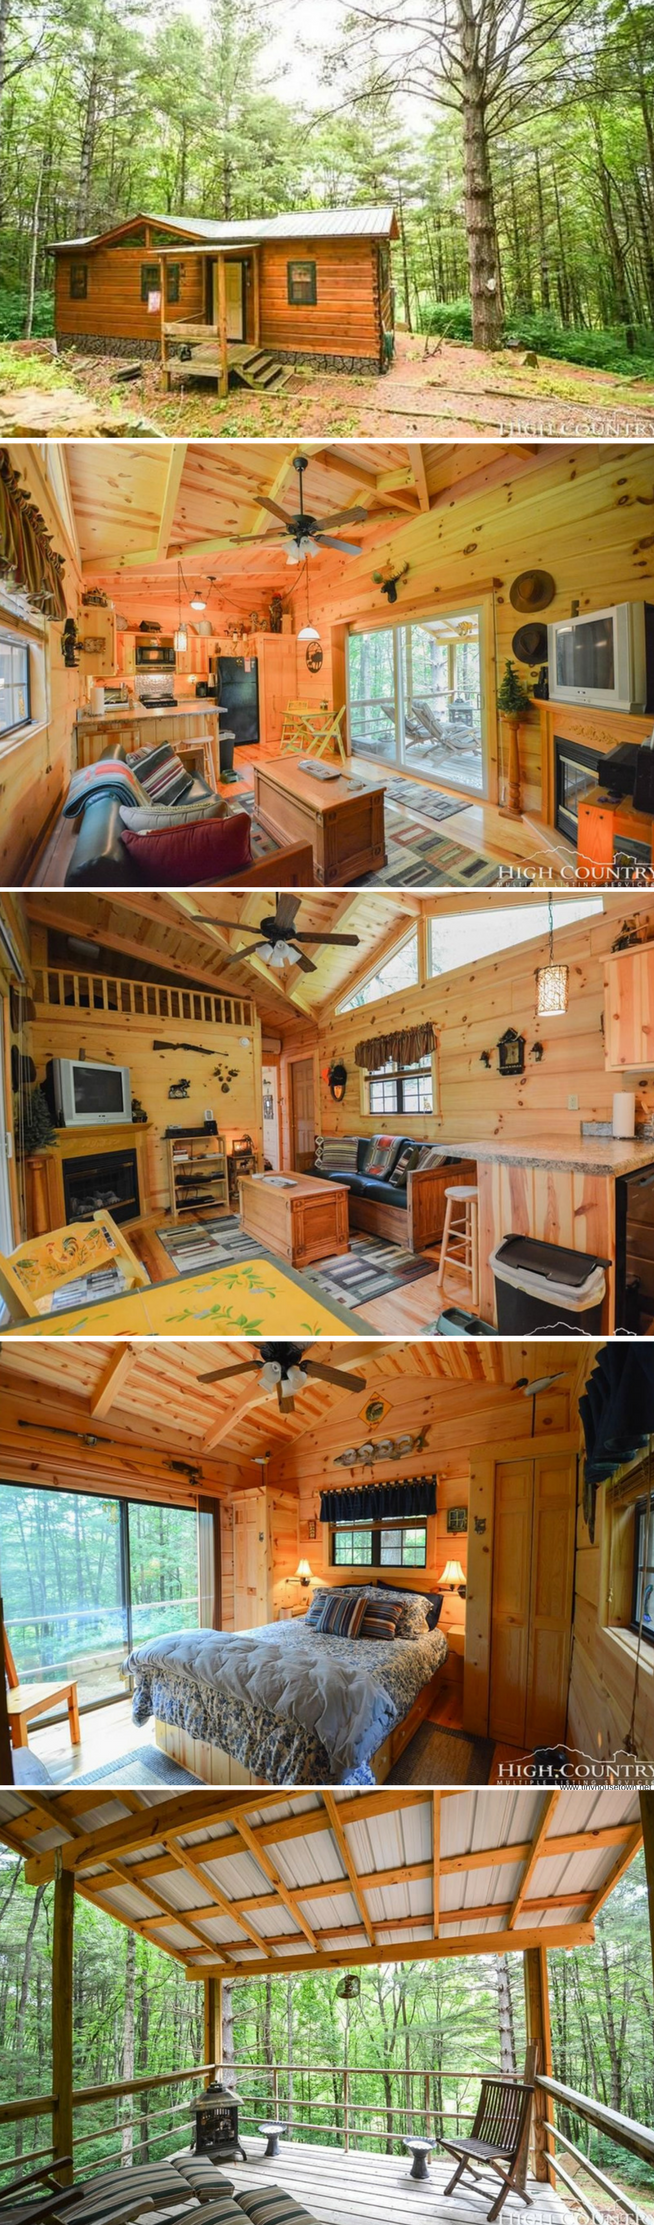 Log cabins for sale in north carolina - A 400 Sq Ft Cabin On Three Acres Available For Sale In North Carolina